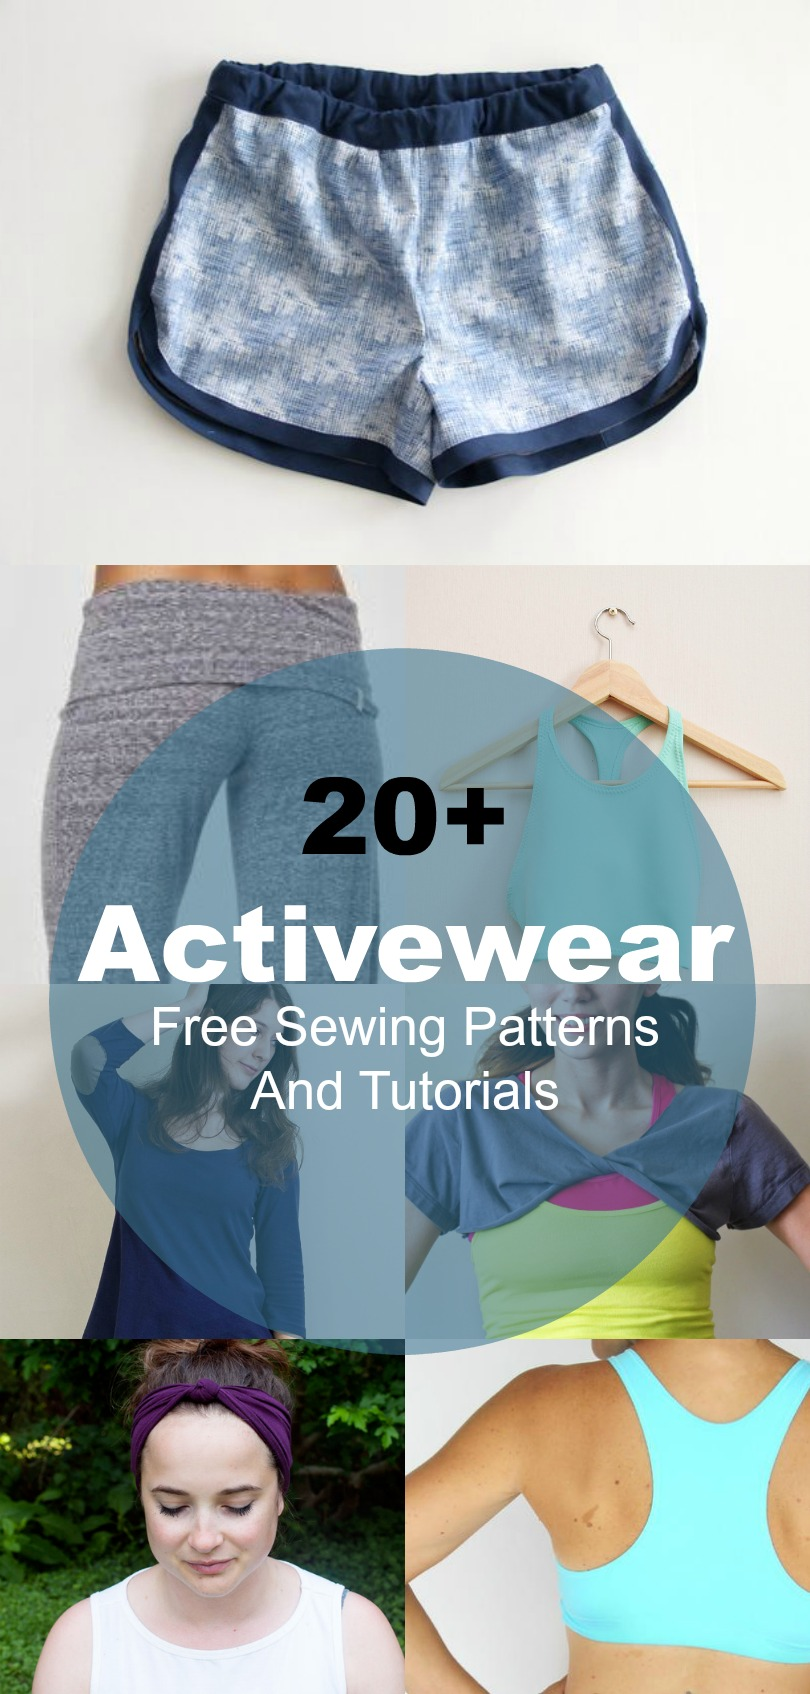 20 Free 12 Granny Square Crochet Patterns: 20+ Free Sewing Patterns For Athletic Wear